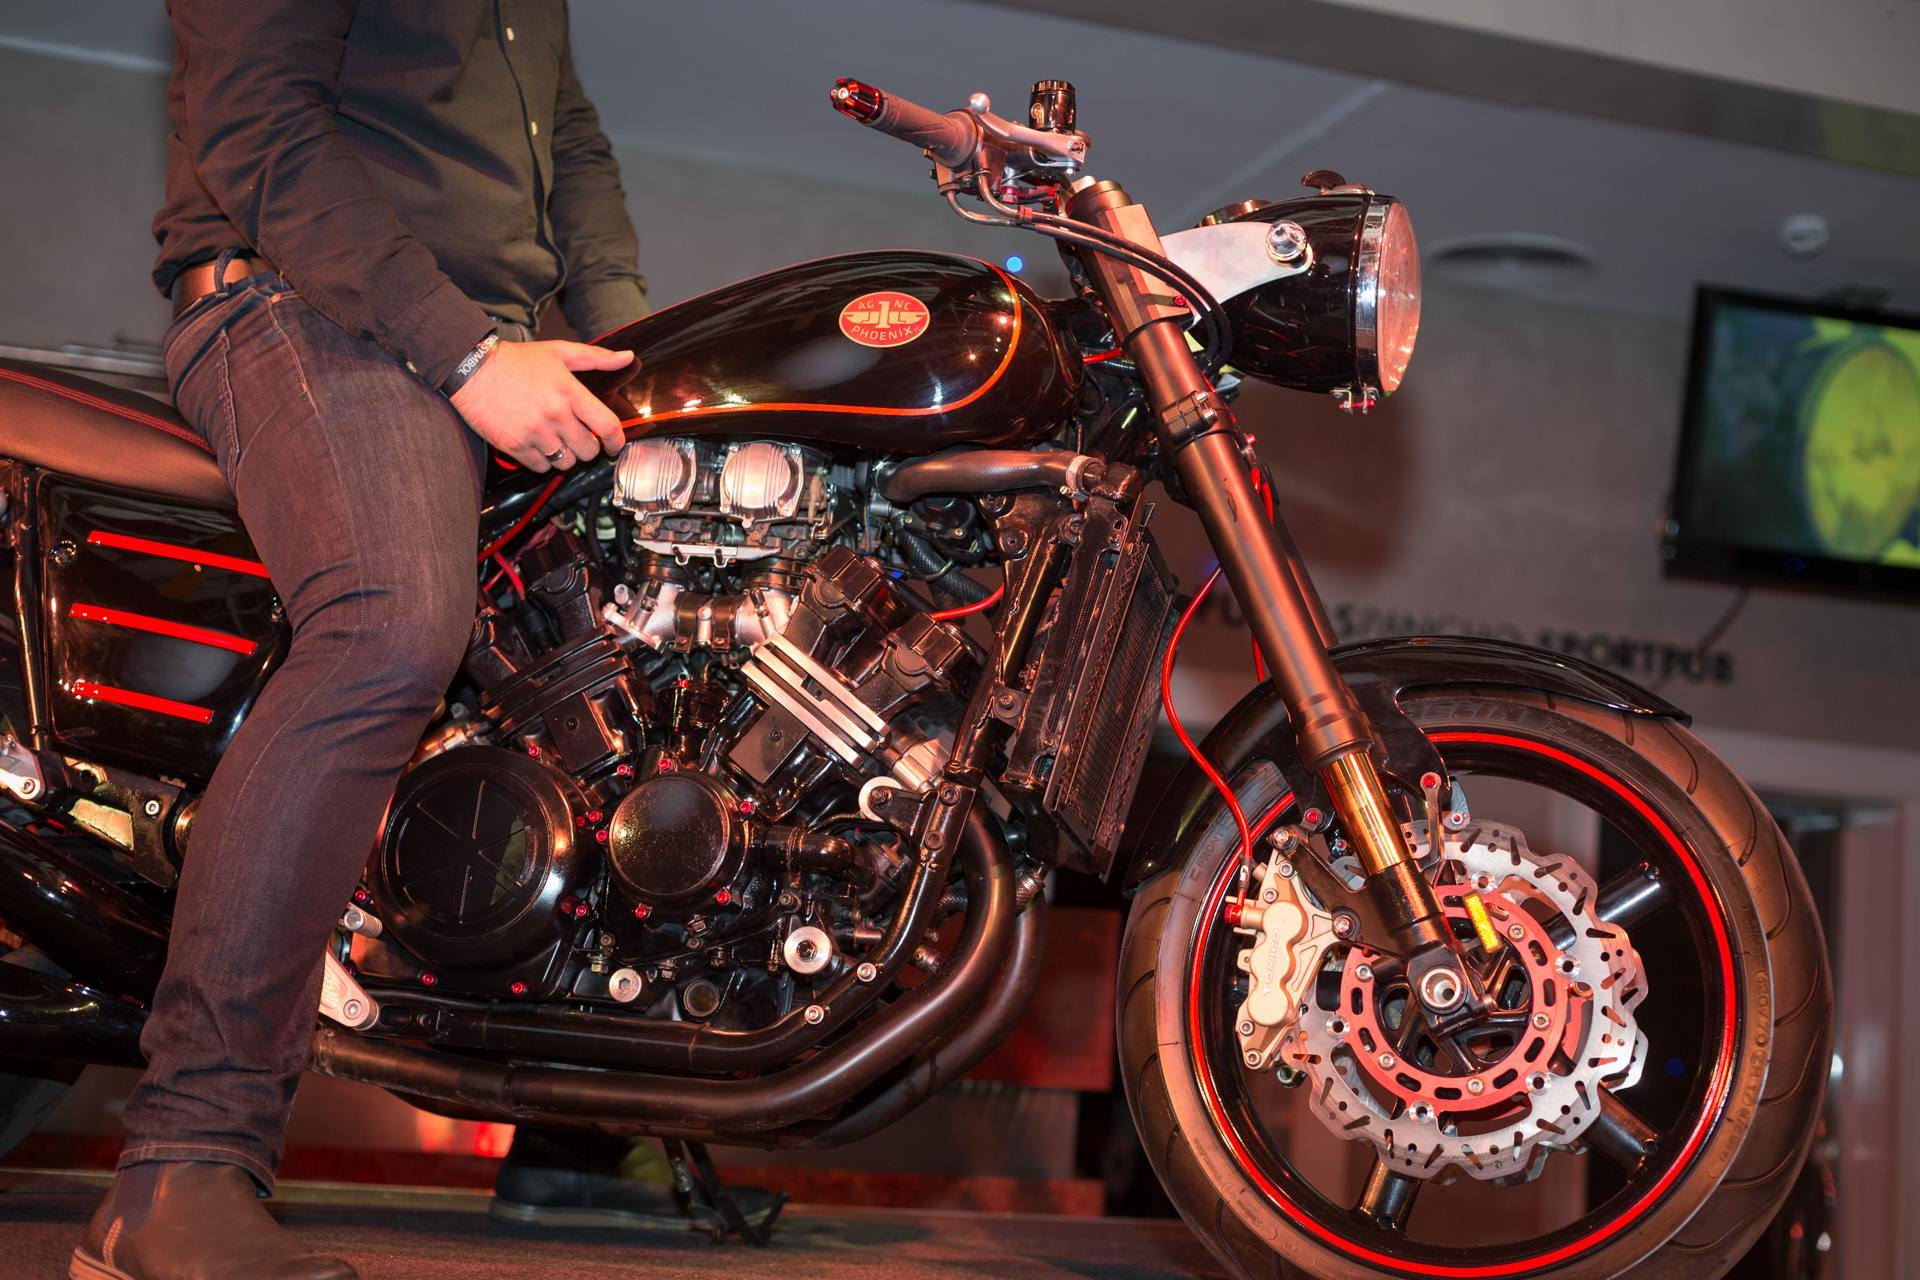 lupus alpha the new russian muscle bike is in fact all italian